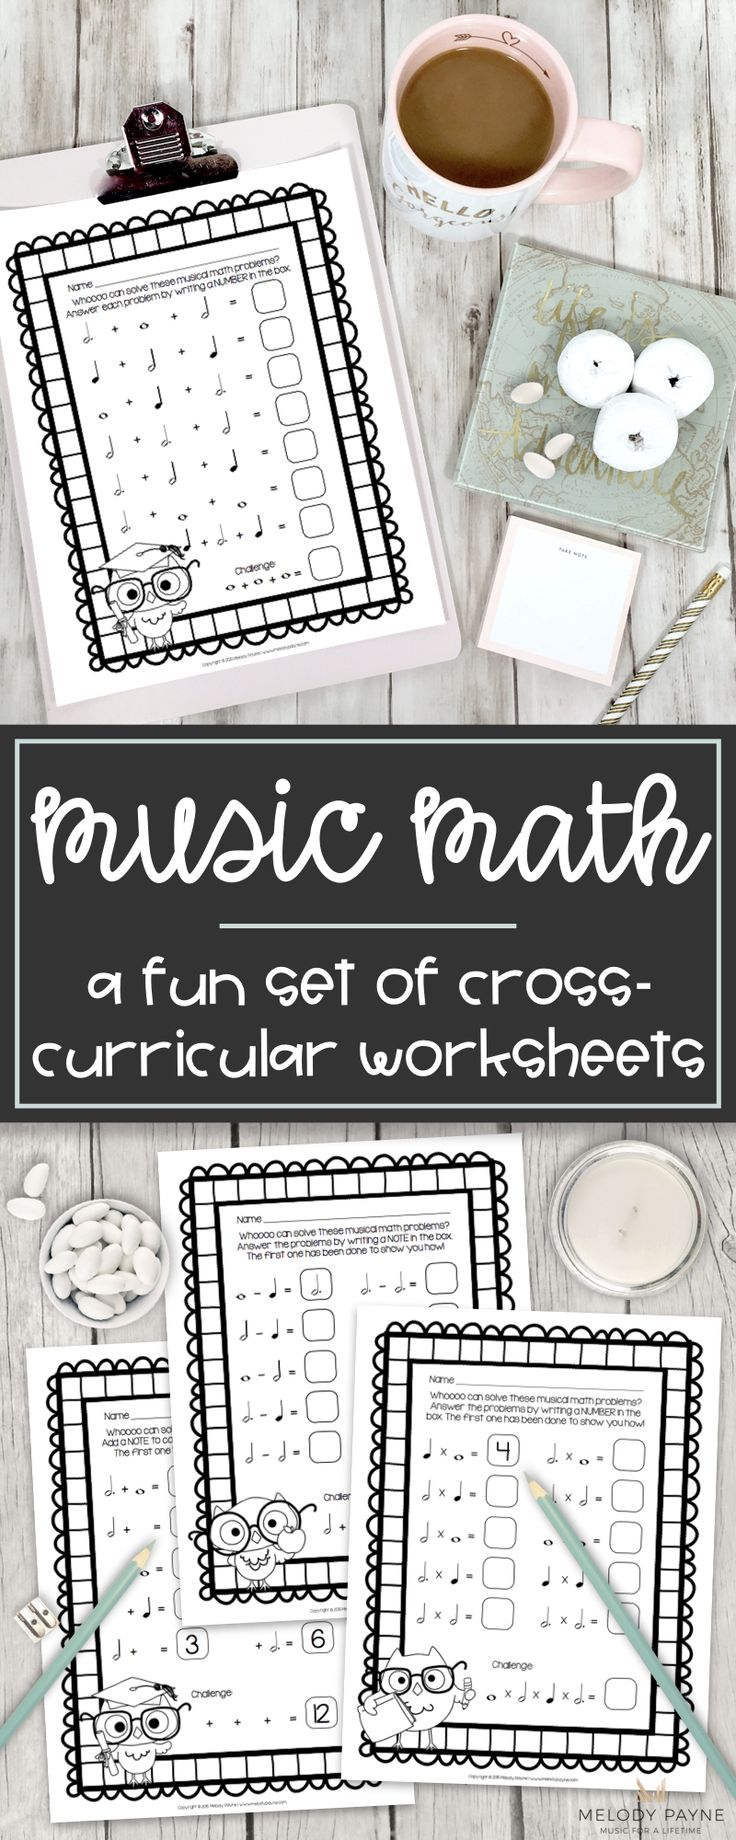 """These fun owl-themed printable cross-curricular activities take musical math to a whole new level! Addition, subtraction, multiplication, and fill-in-the-blank-with-a-number-or-note worksheets will make a """"positive"""" impact on your students, """"subtract"""" their doubt about note values, and """"multiply"""" their confidence! Musical math is a hoot! Perfect ideas for piano lessons, music class, group lessons, the sub tub, music centers, and much more!"""